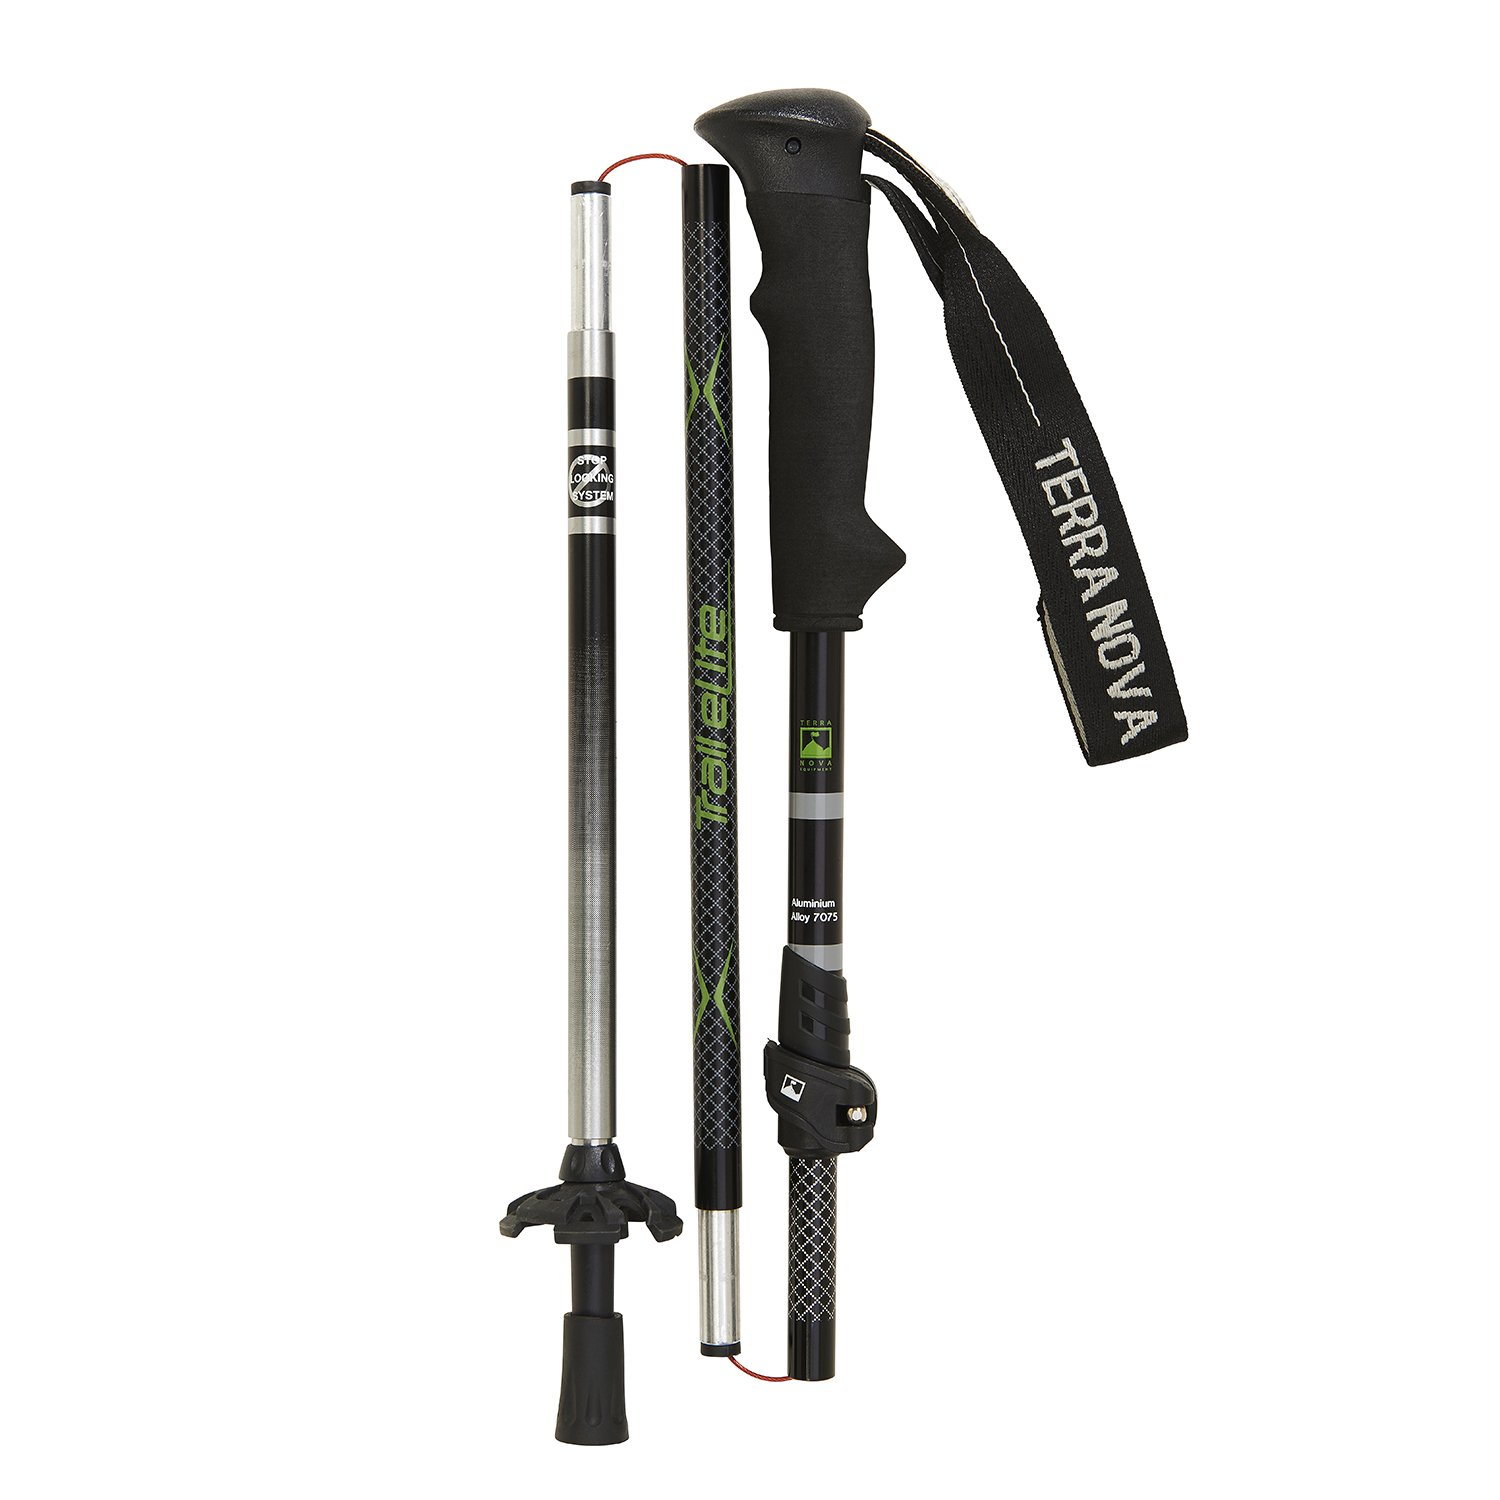 Terra Nova Trail Elite Trekking Pole